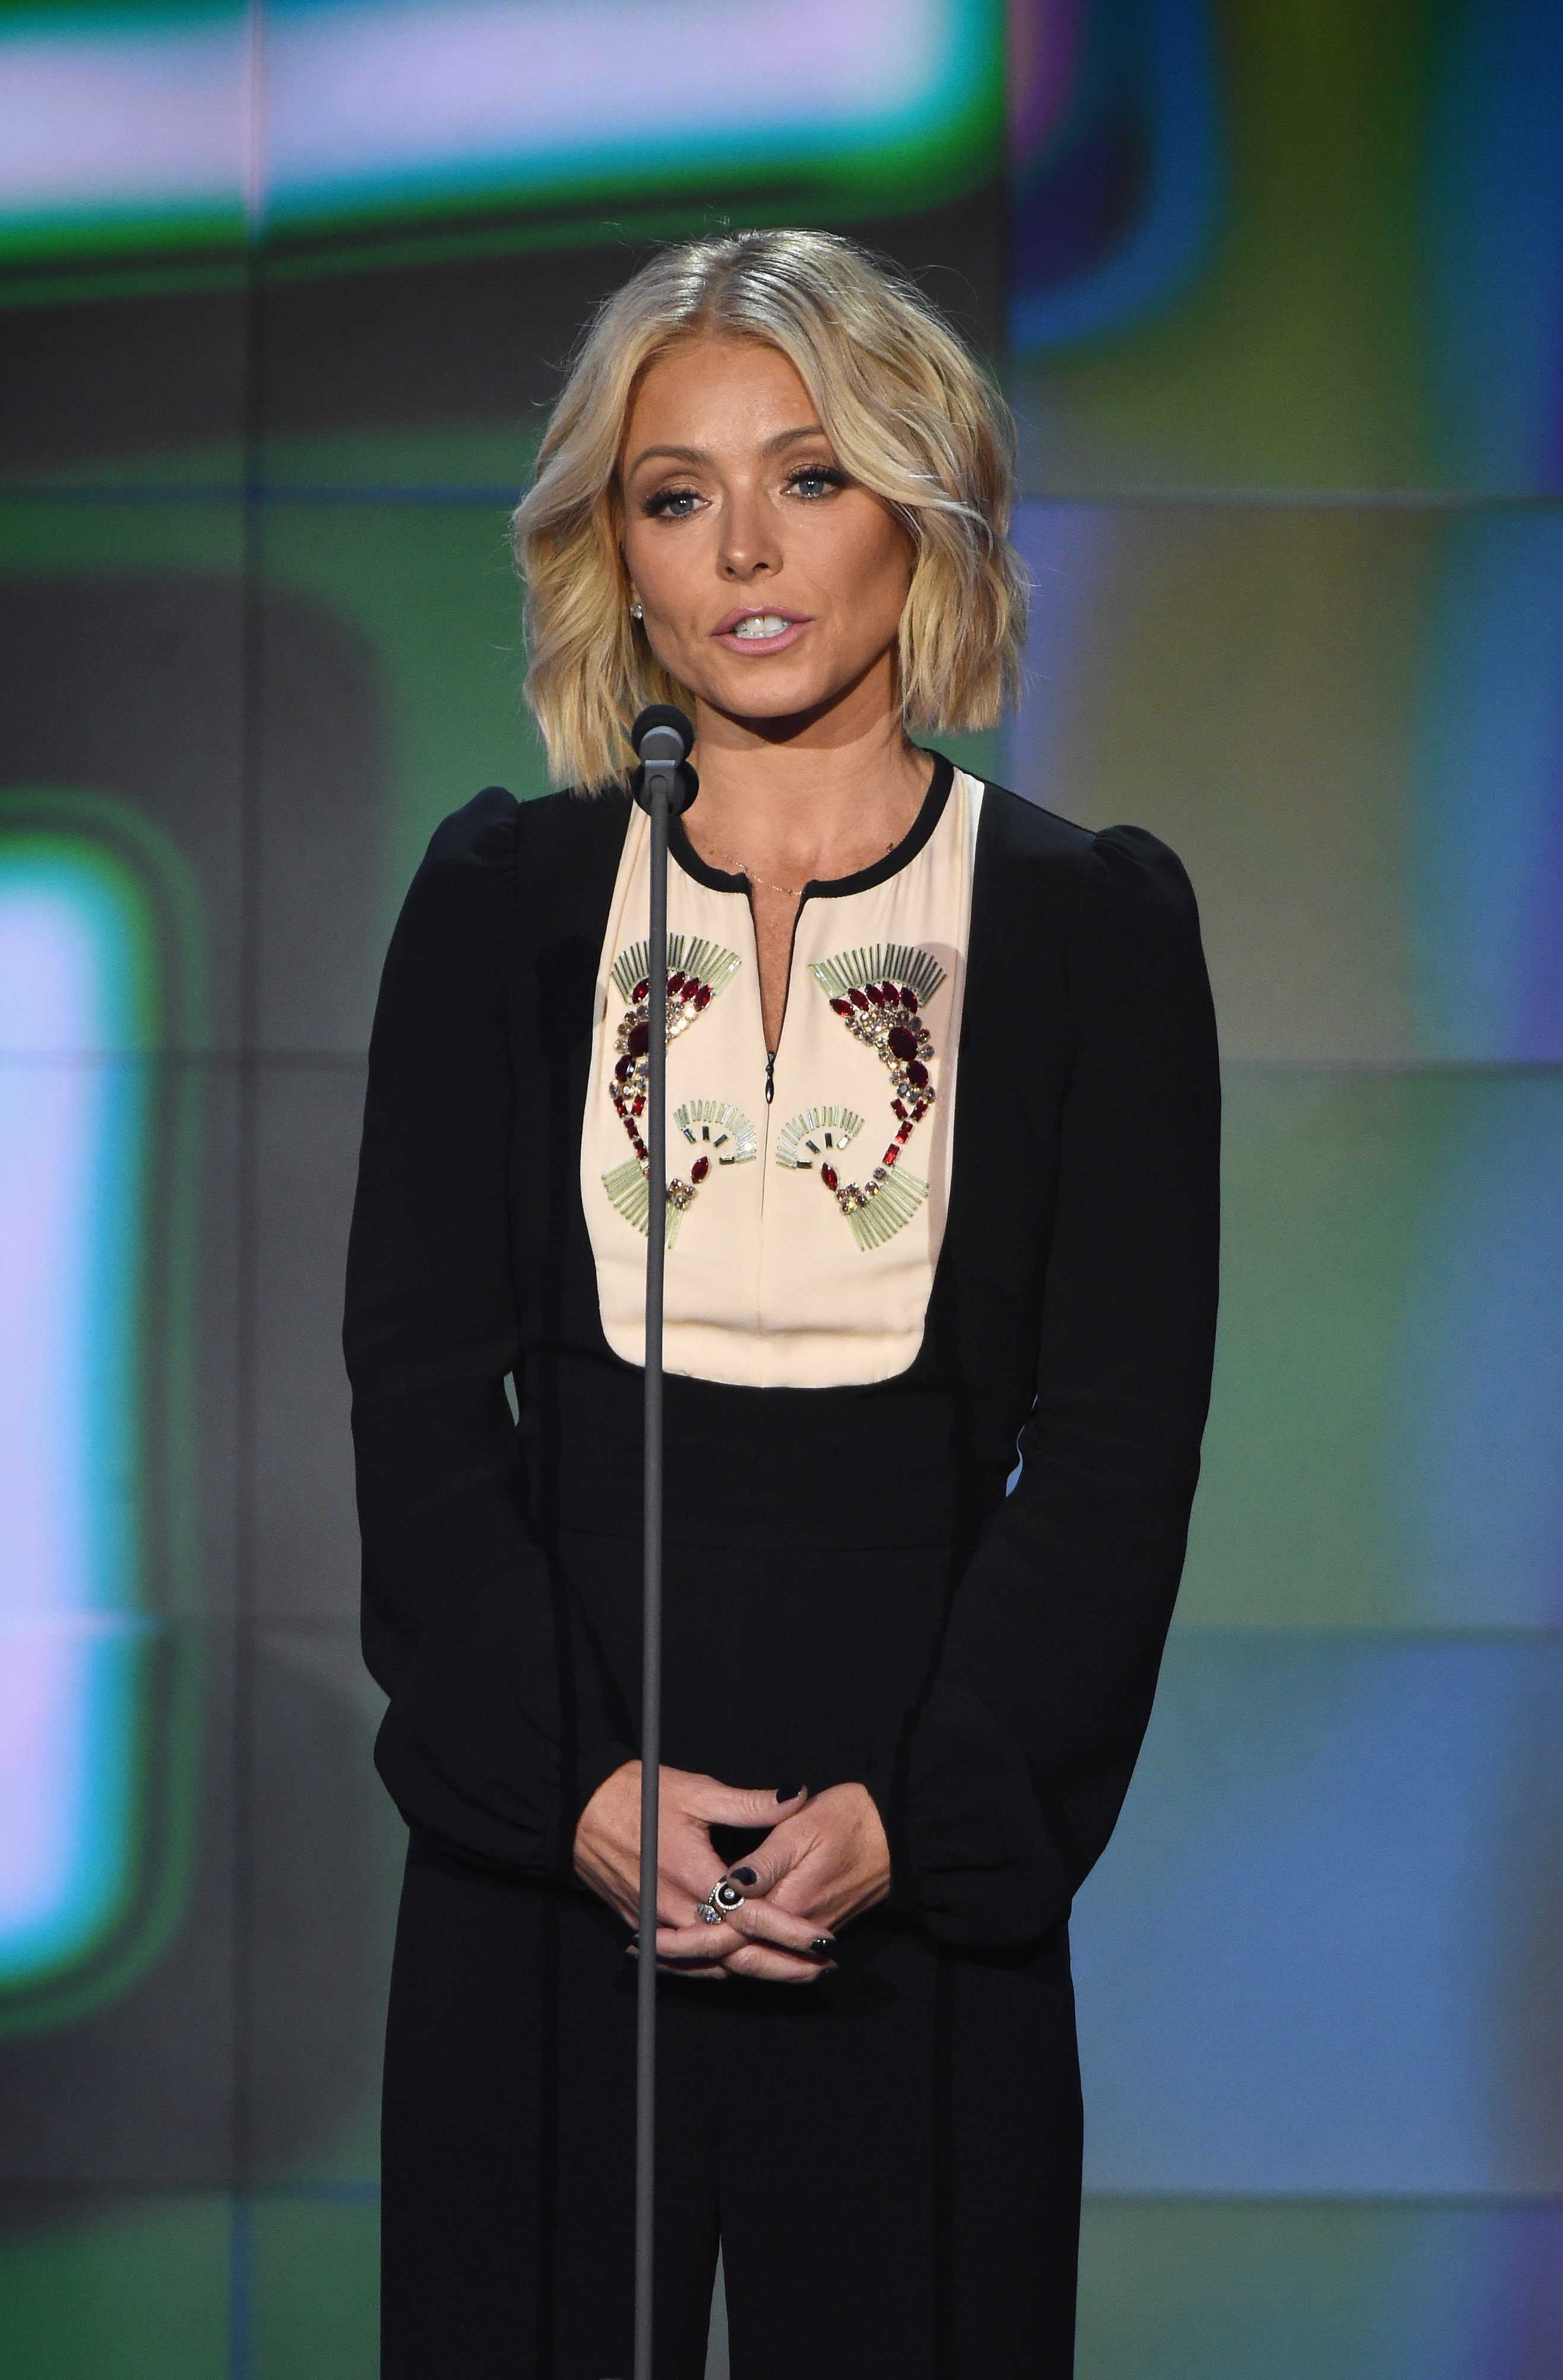 Kelly Ripa speaking at the CNN Heroes Show at the American Museum of Natural History on November 17, 2015 in New York City | Photo: Getty Images